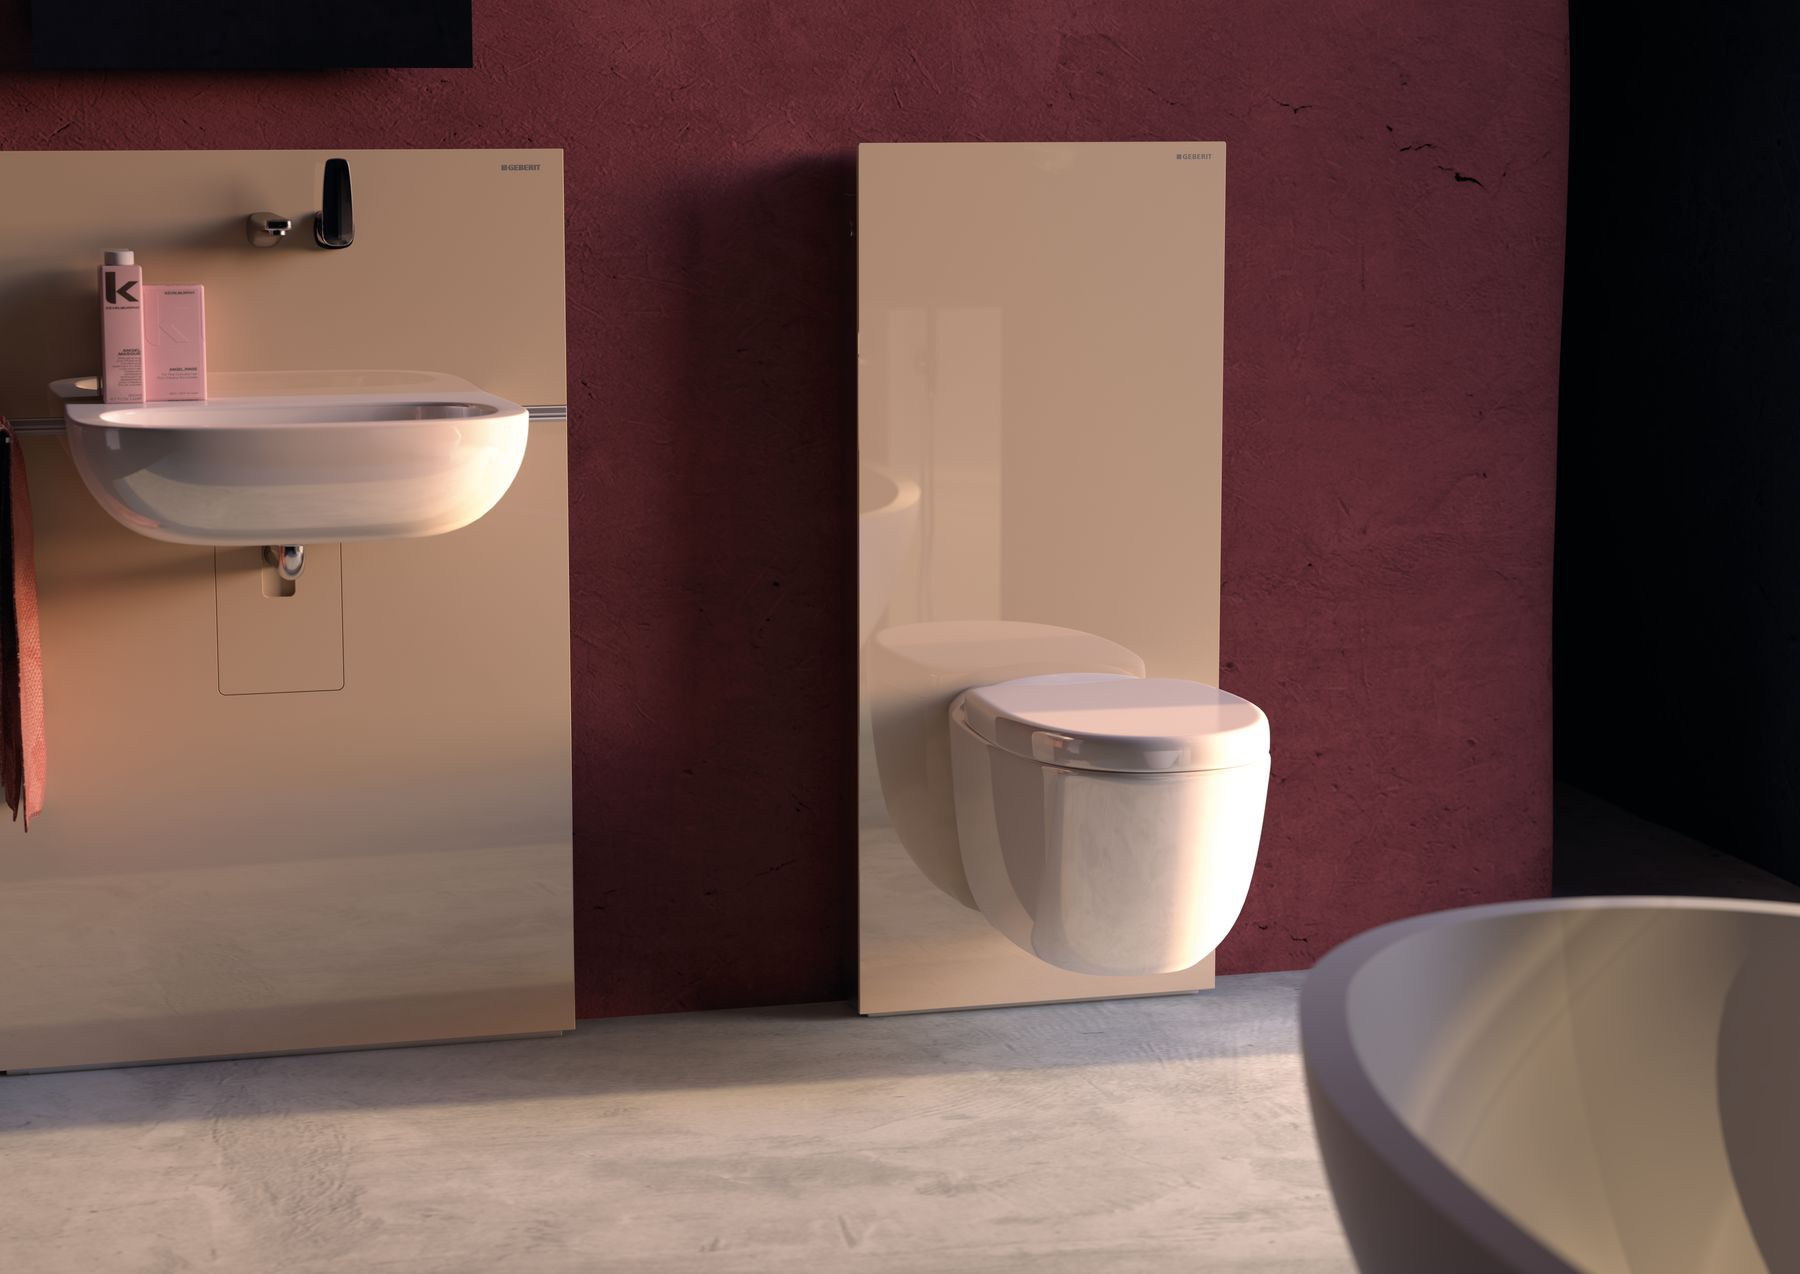 Geberit Monolith Sanitary Modules For Wall Hung Toilet And Wash Basin Wall Hung Toilet Sanitary Toilet